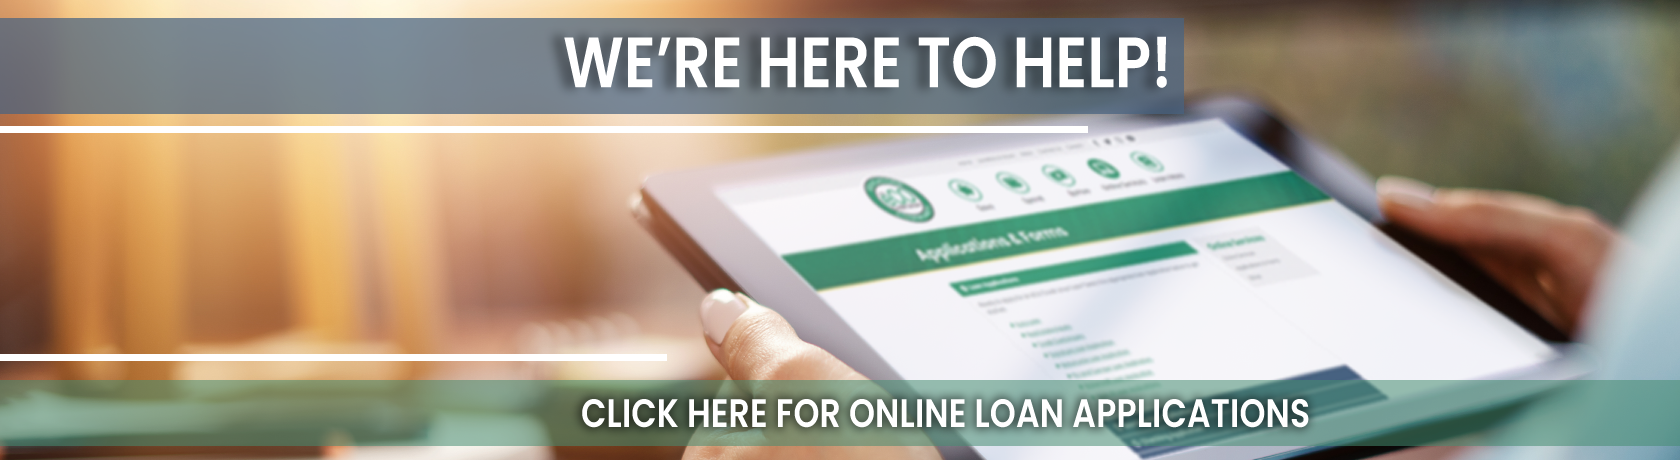 We're here to help! Click here for online loan applications